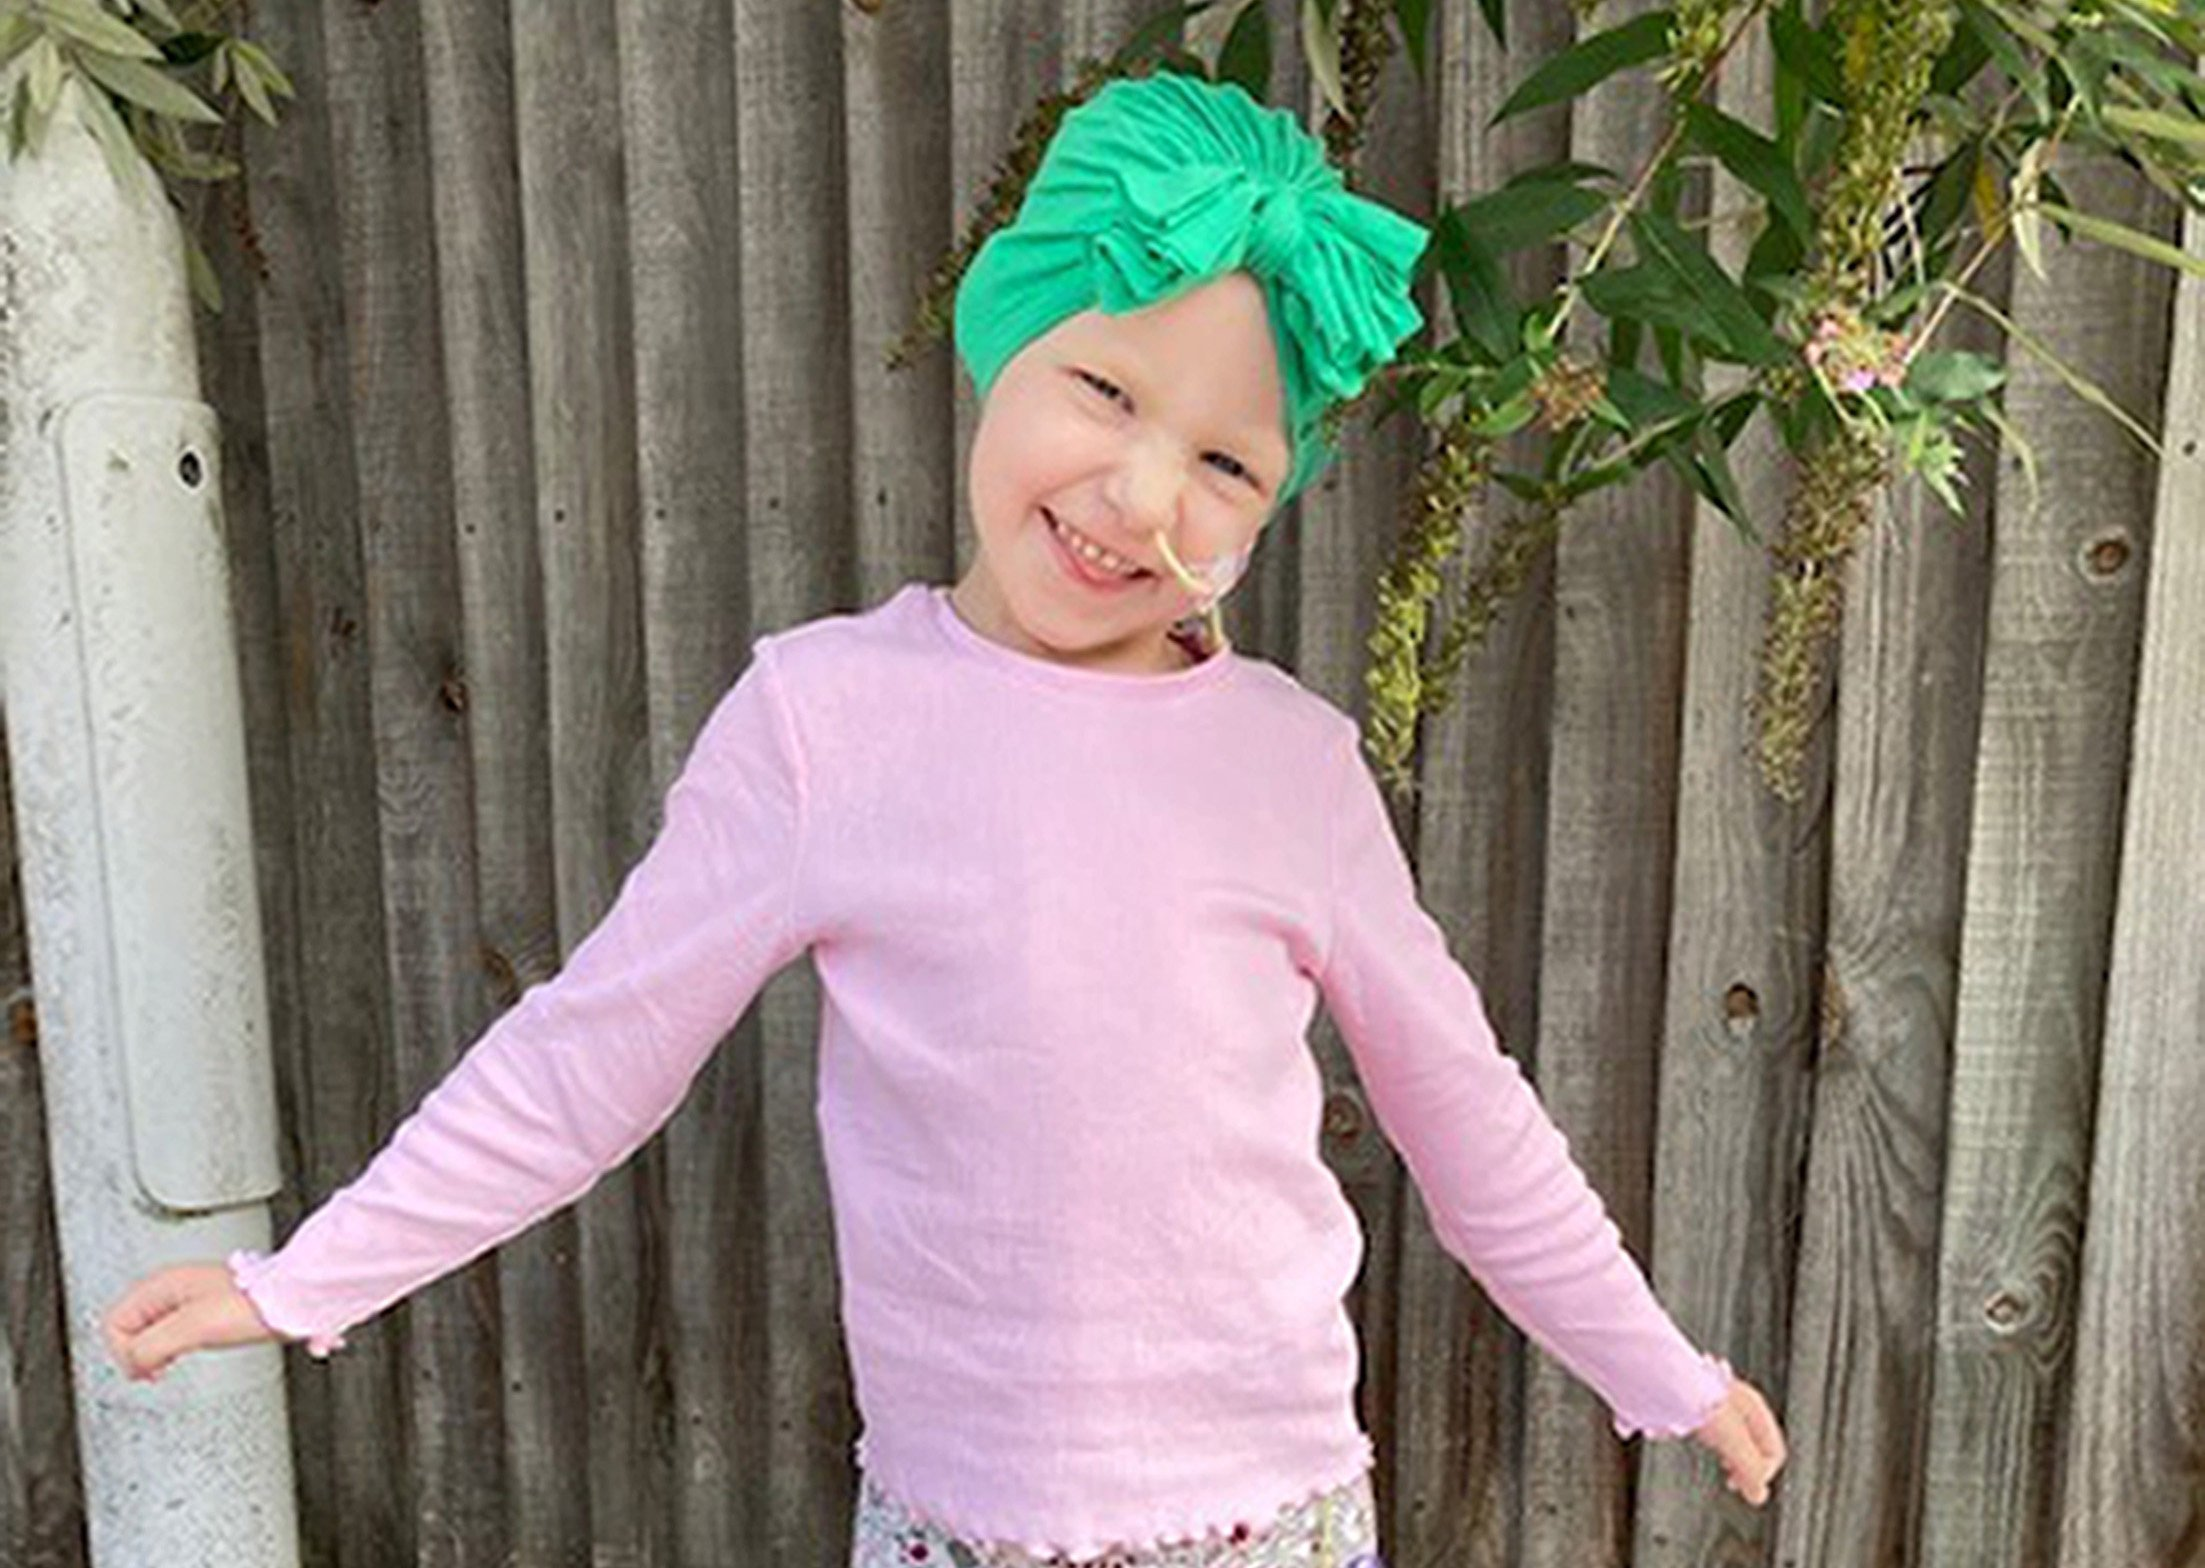 Four-year-old girl has just months to raise £100,000 for cancer vaccine